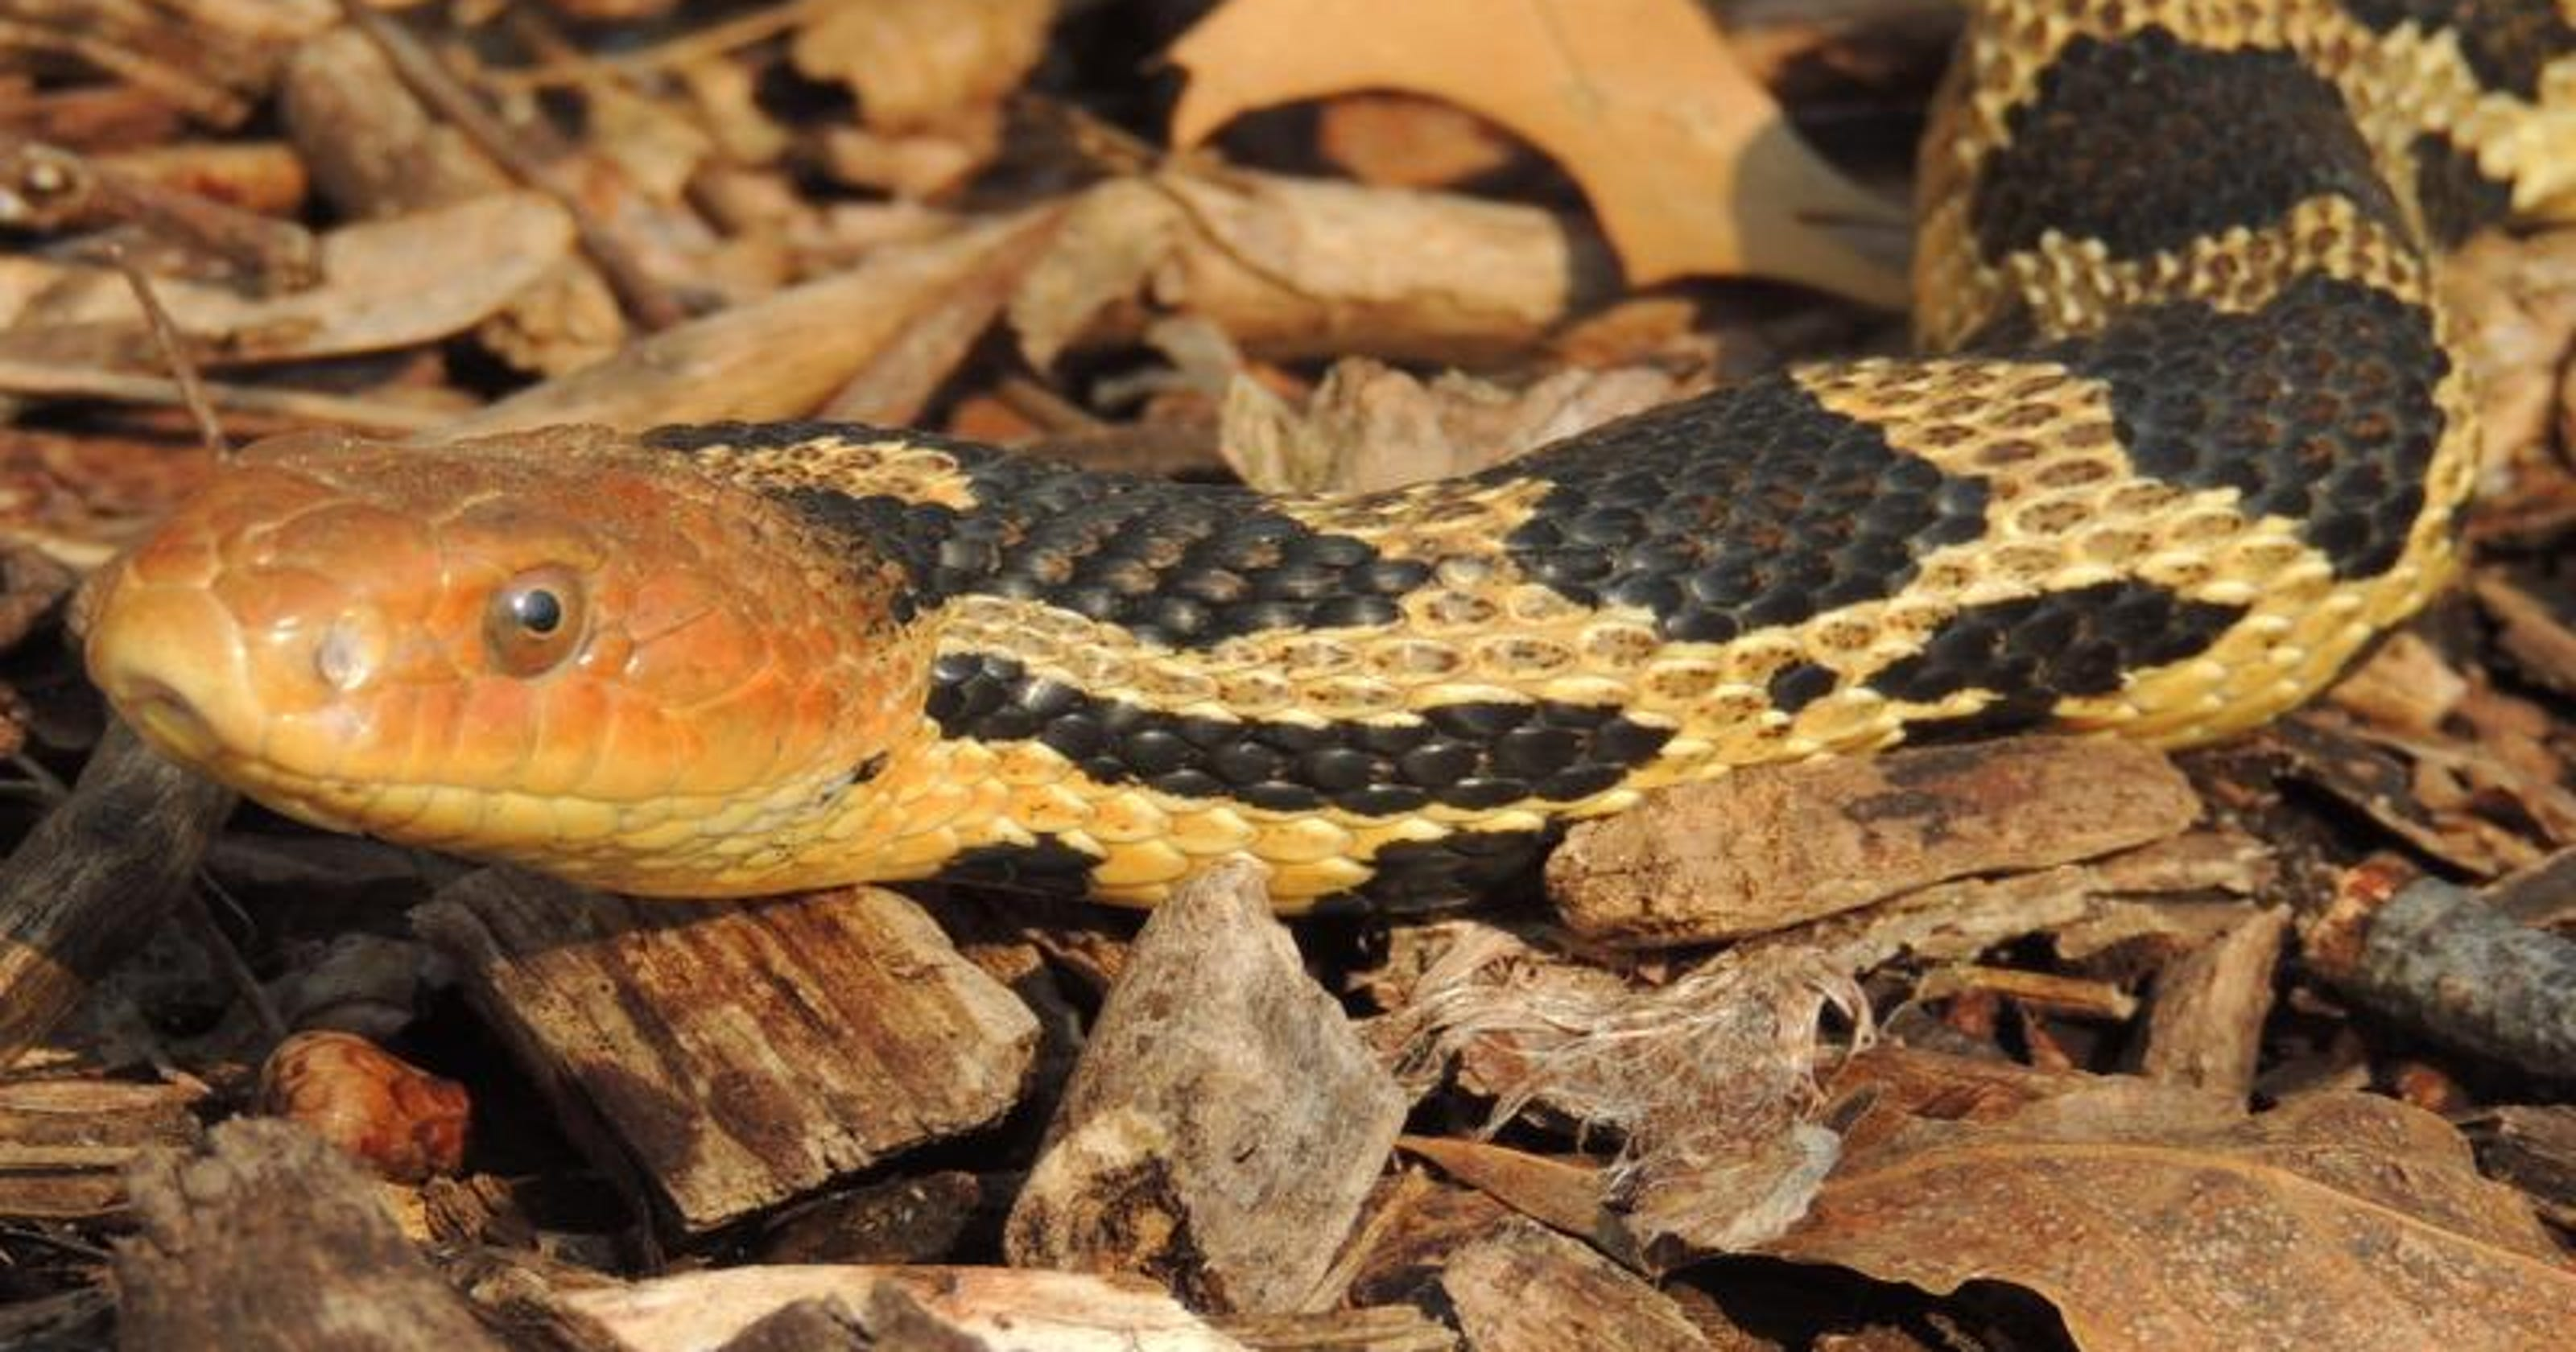 Danger ahead? A guide to species of snakes you may encounter